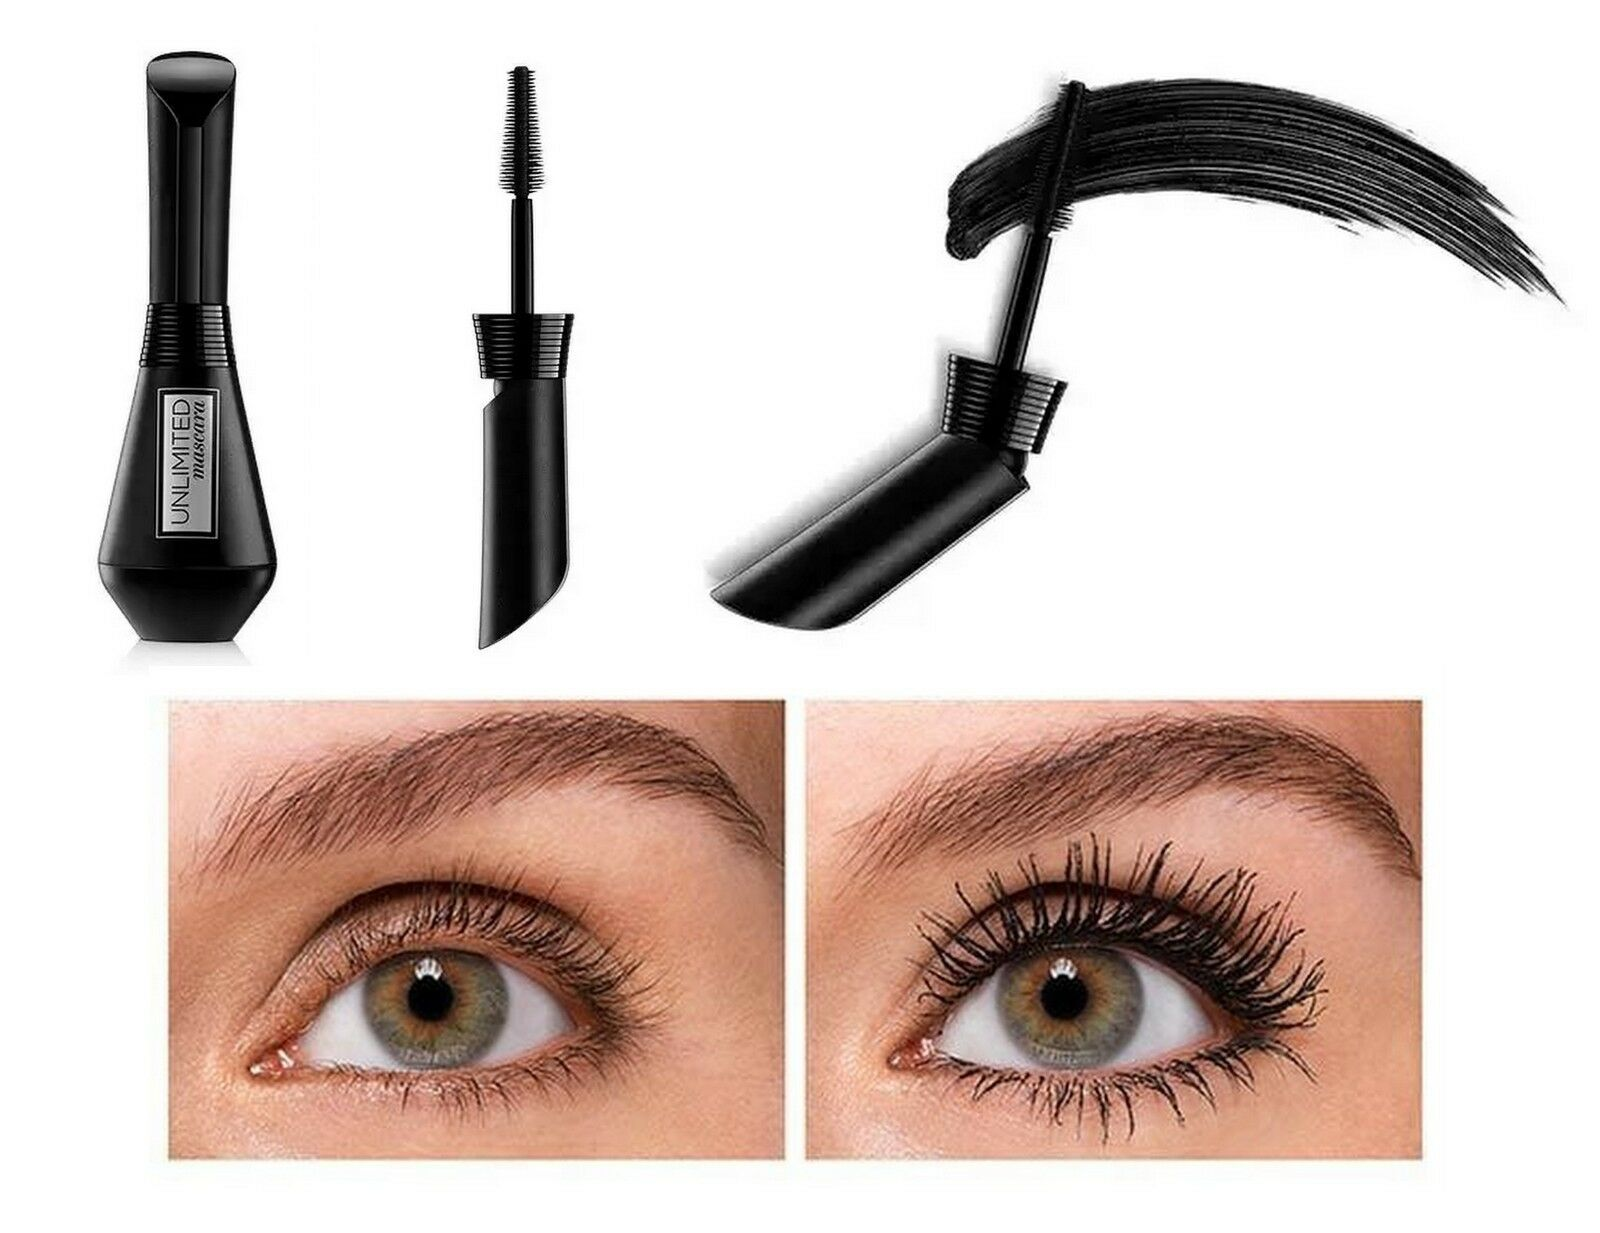 Loreal Paris Infallible Unlimited Bendable Mascara Lengthens & Volumises New In!